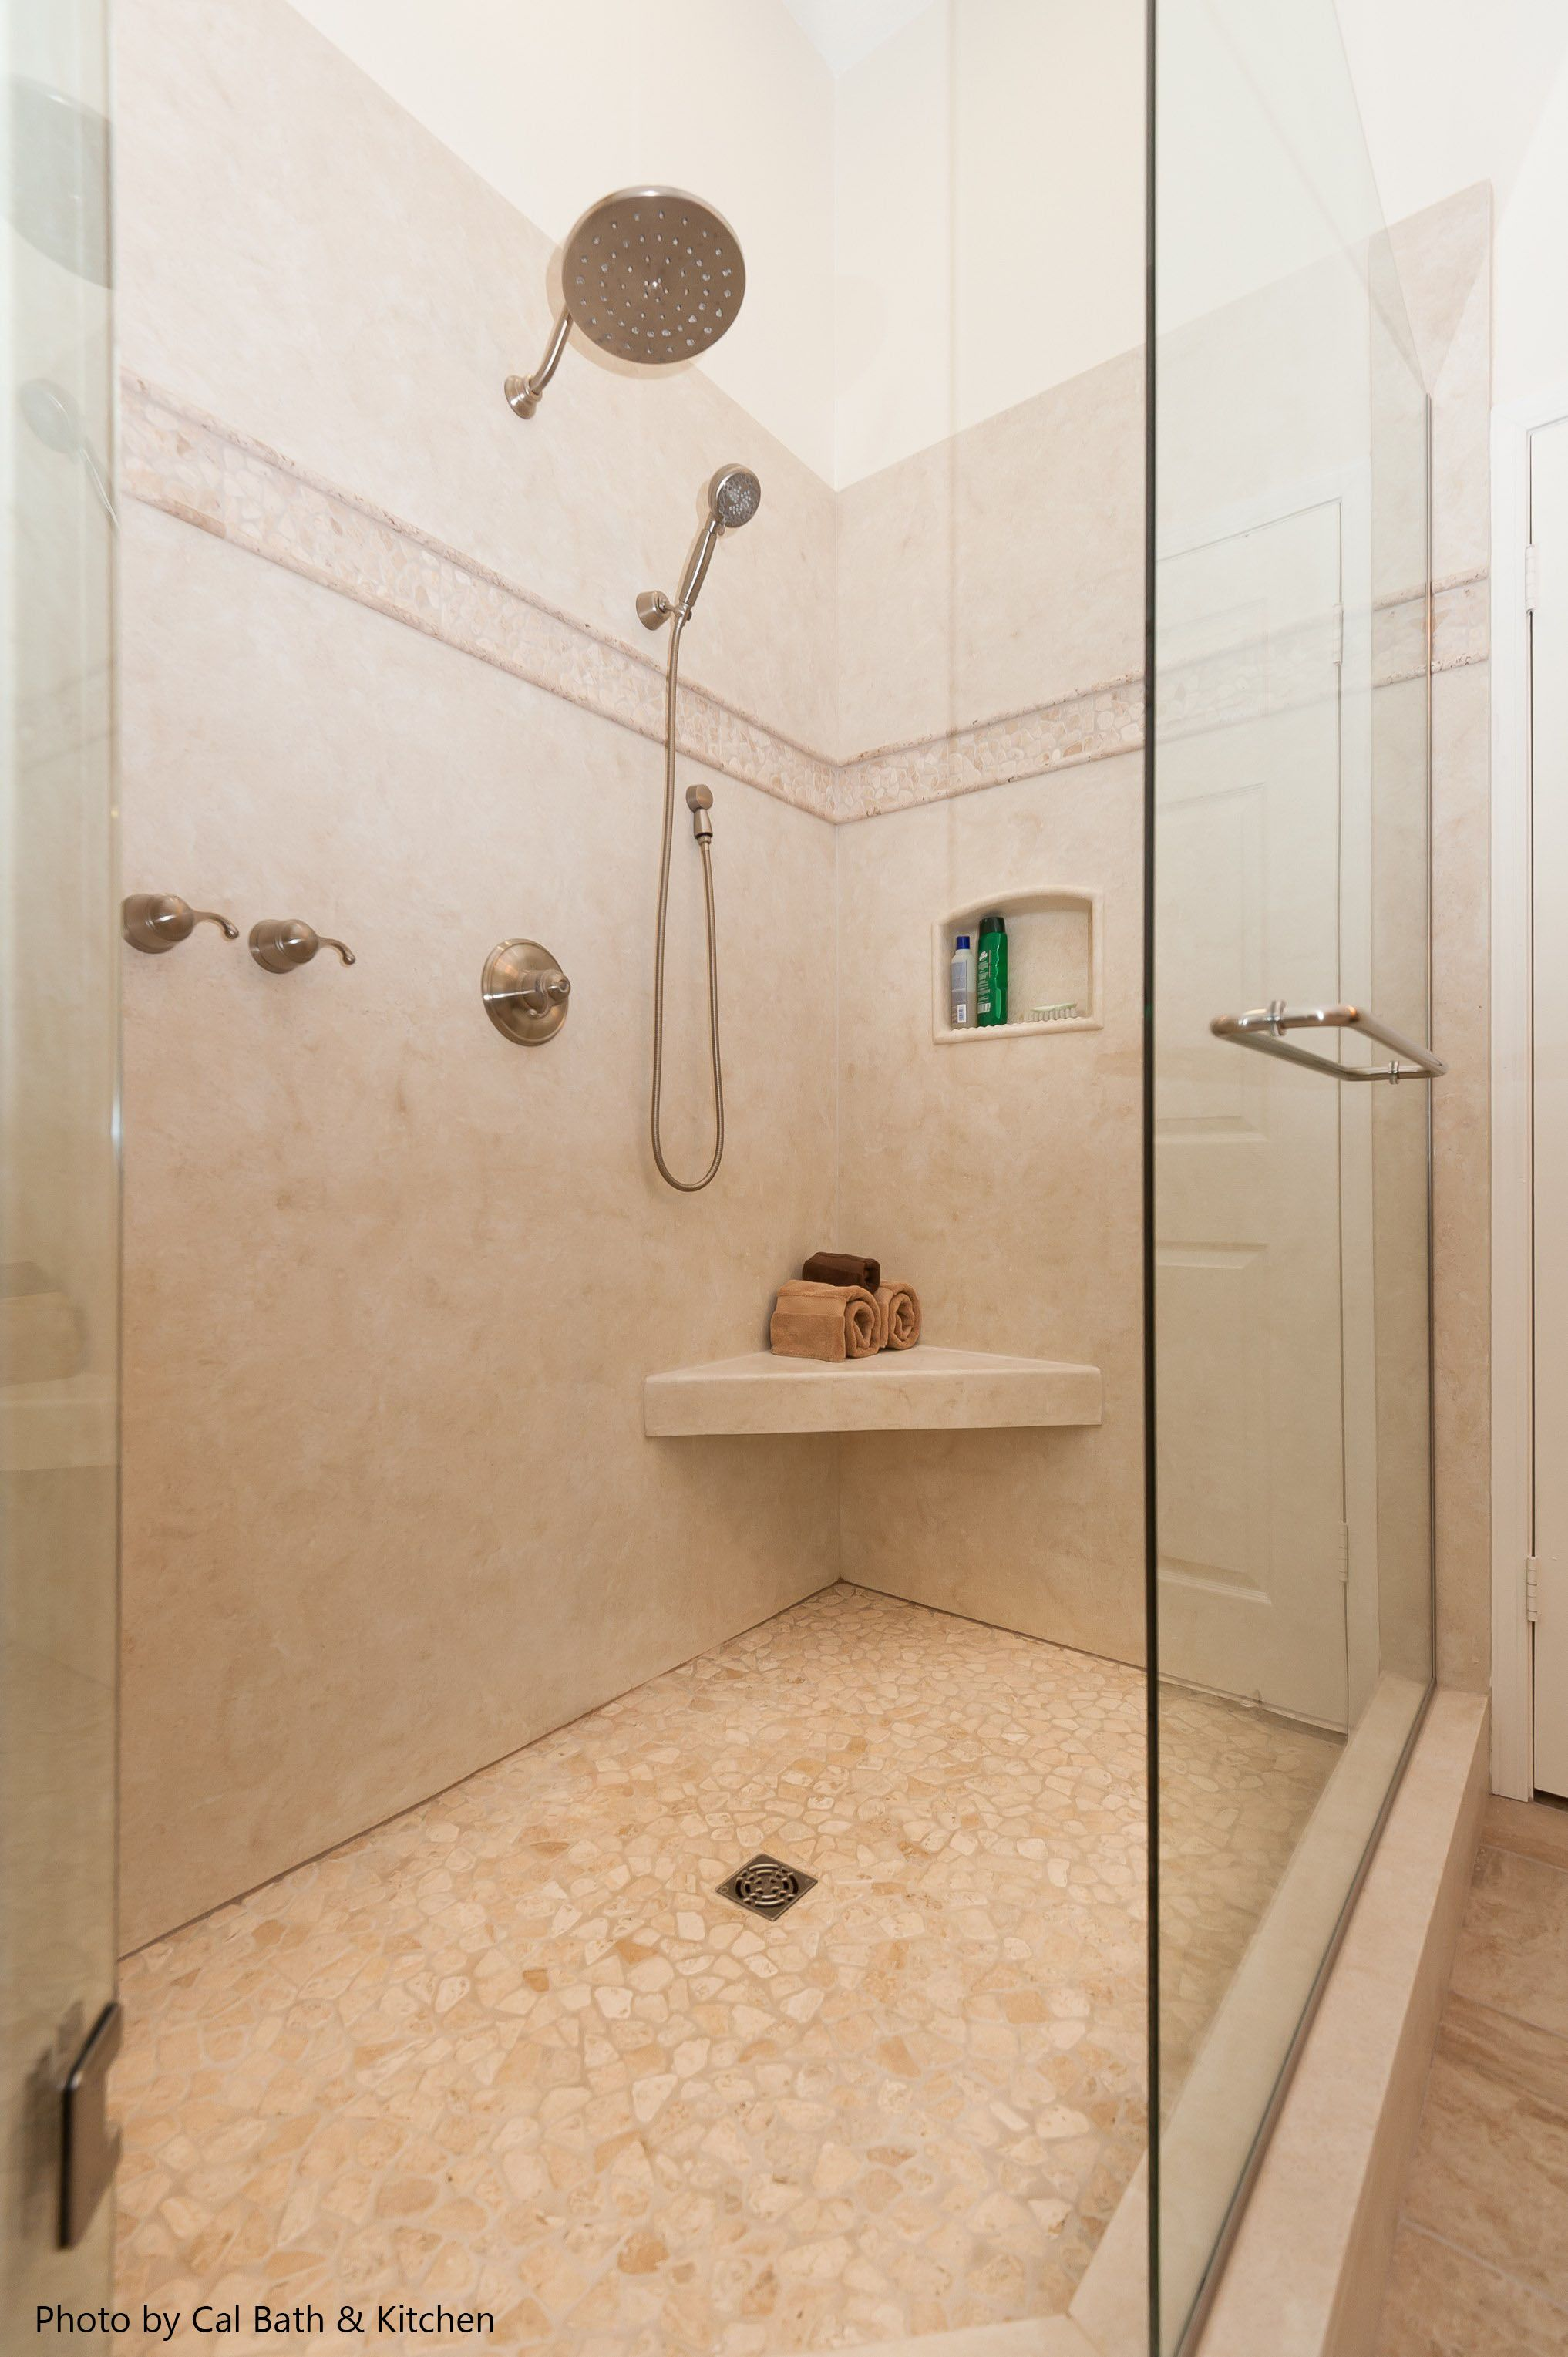 11 Perfect Shower Heads For Your Master Bathroom | Stunning Showers ...